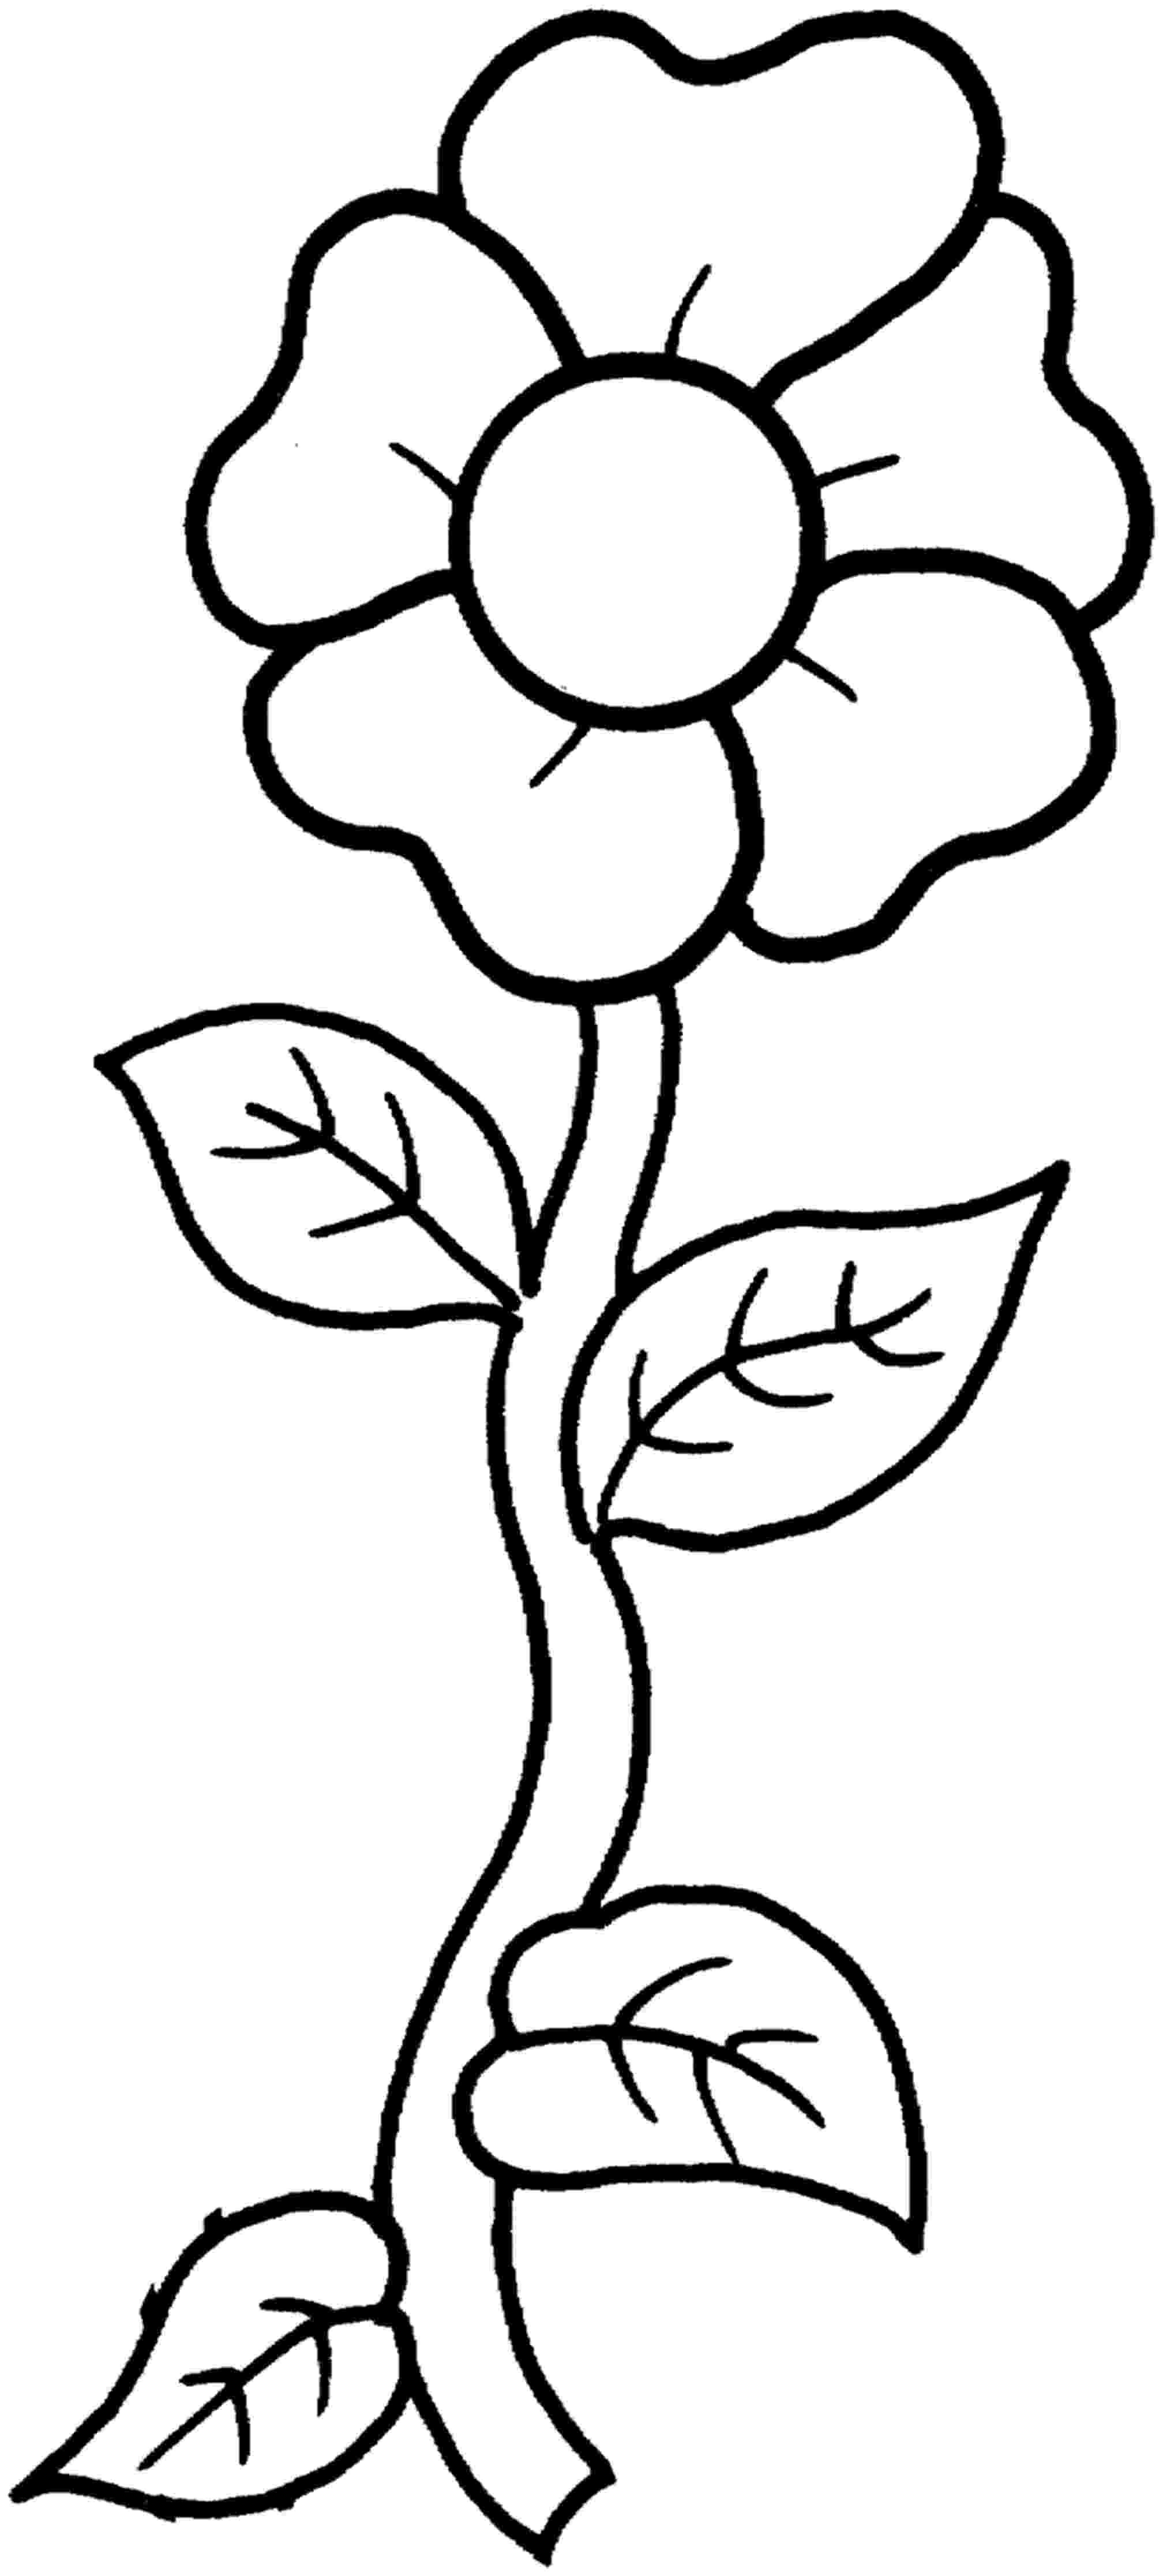 pictures of flowers coloring pages difficult flower coloring pages getcoloringpagescom pictures coloring flowers of pages